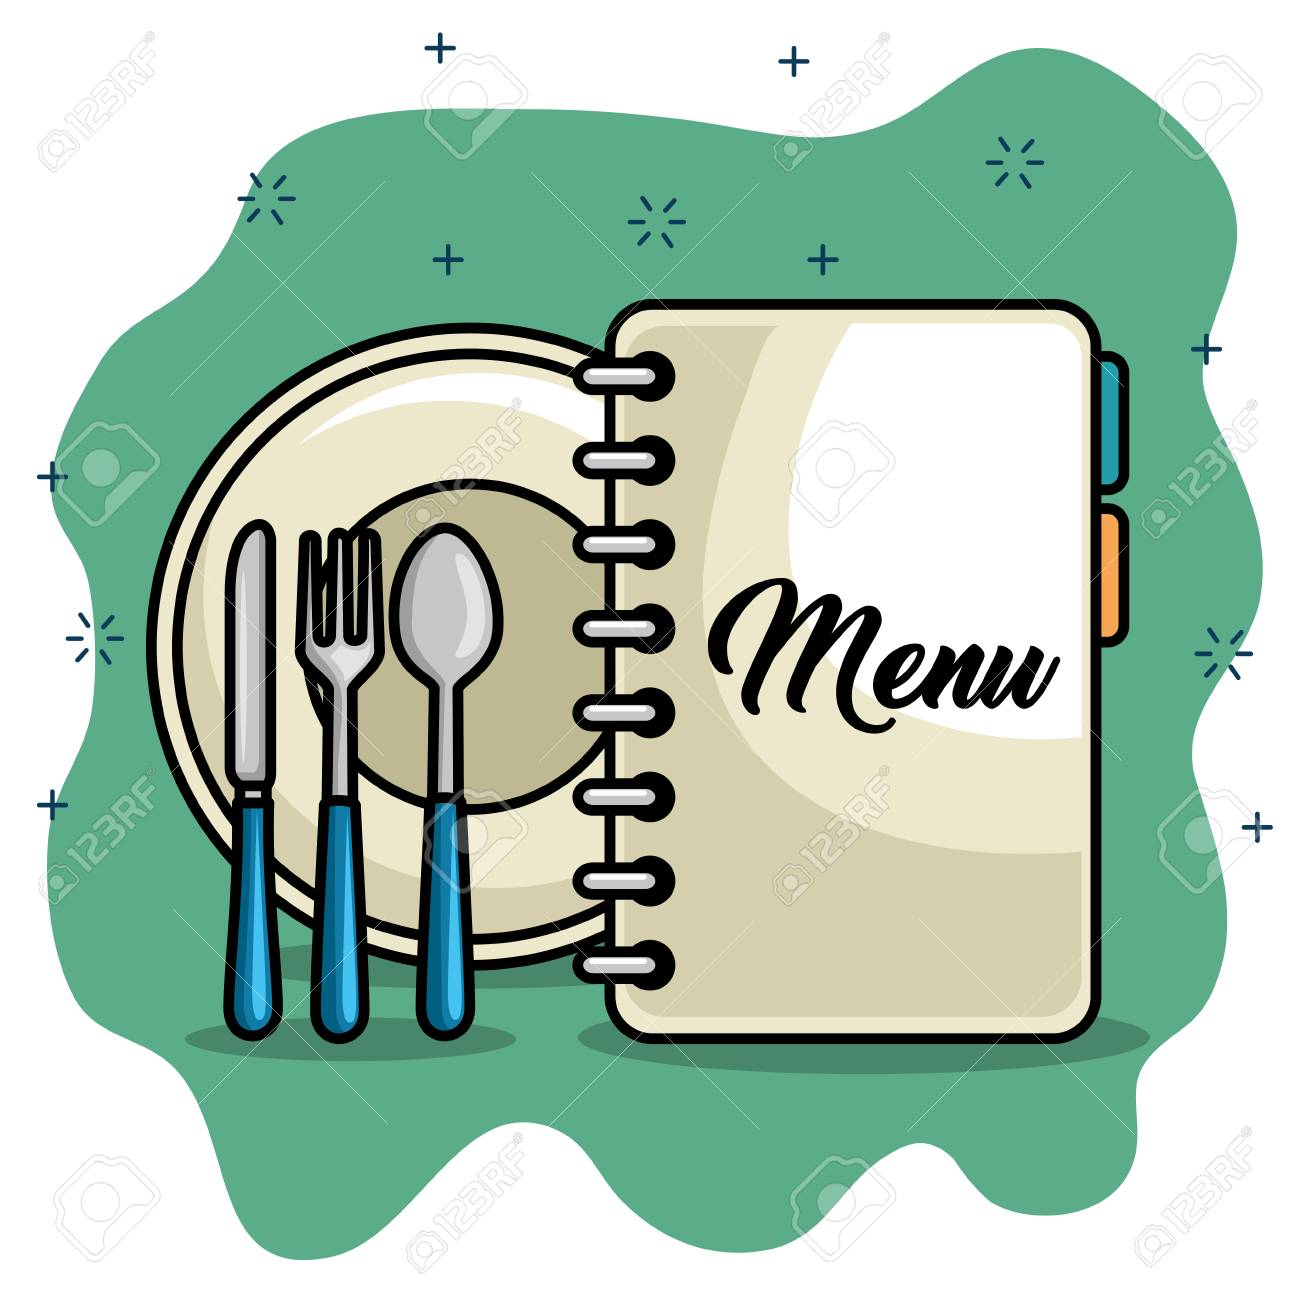 Dessin Restaurant menu restaurant dessin animé vector illustration design graphique